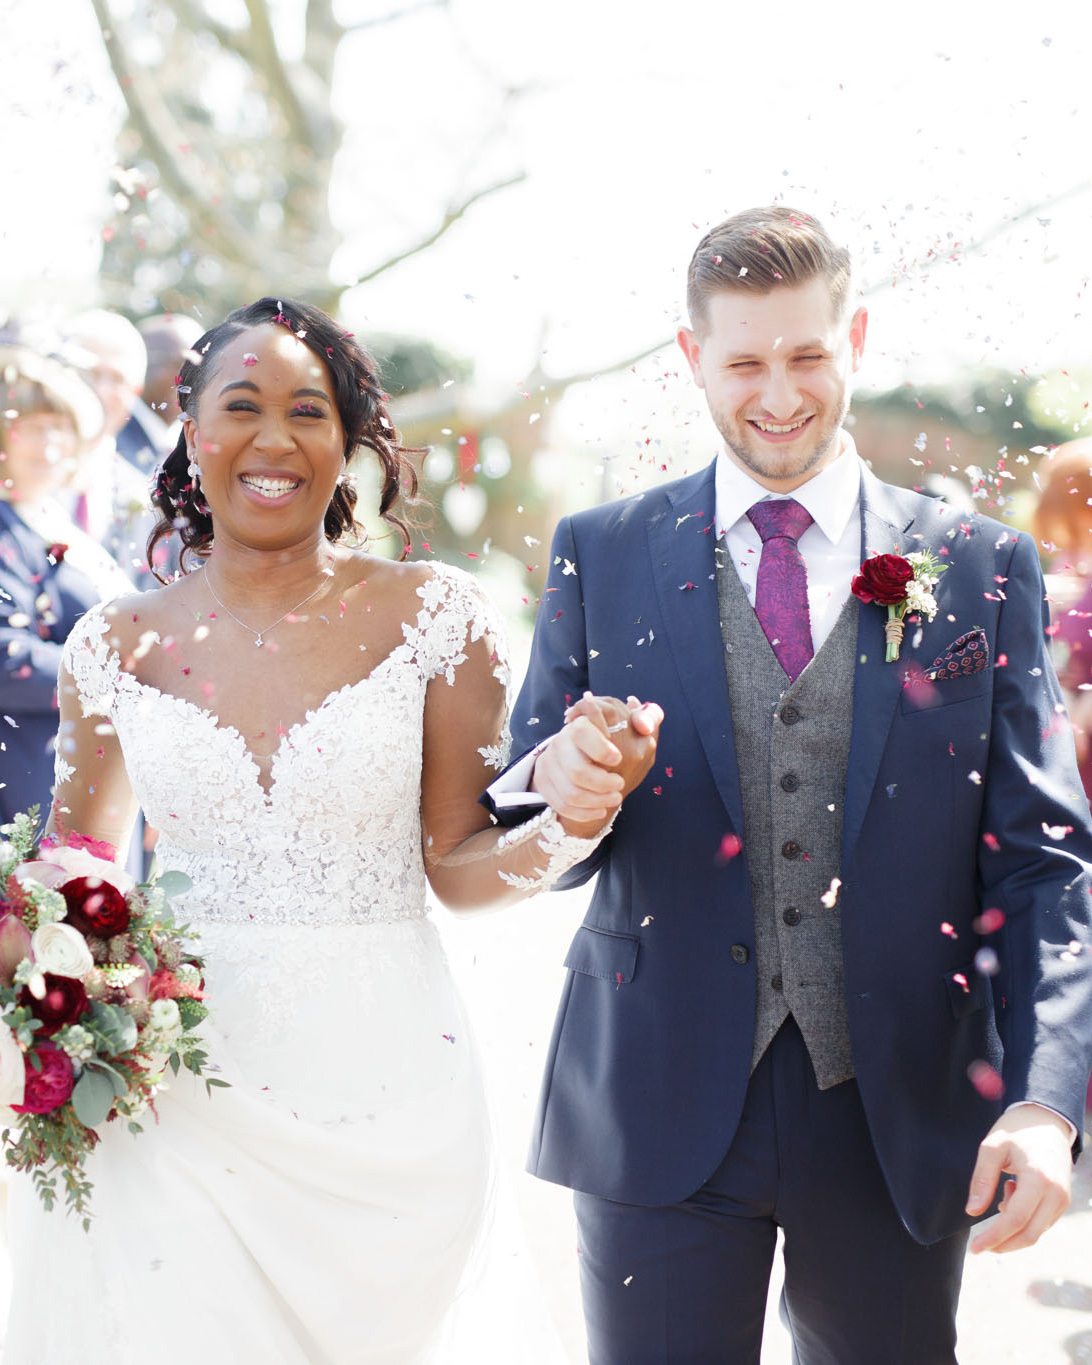 ryan thomas wedding recessional bride and groom confetti